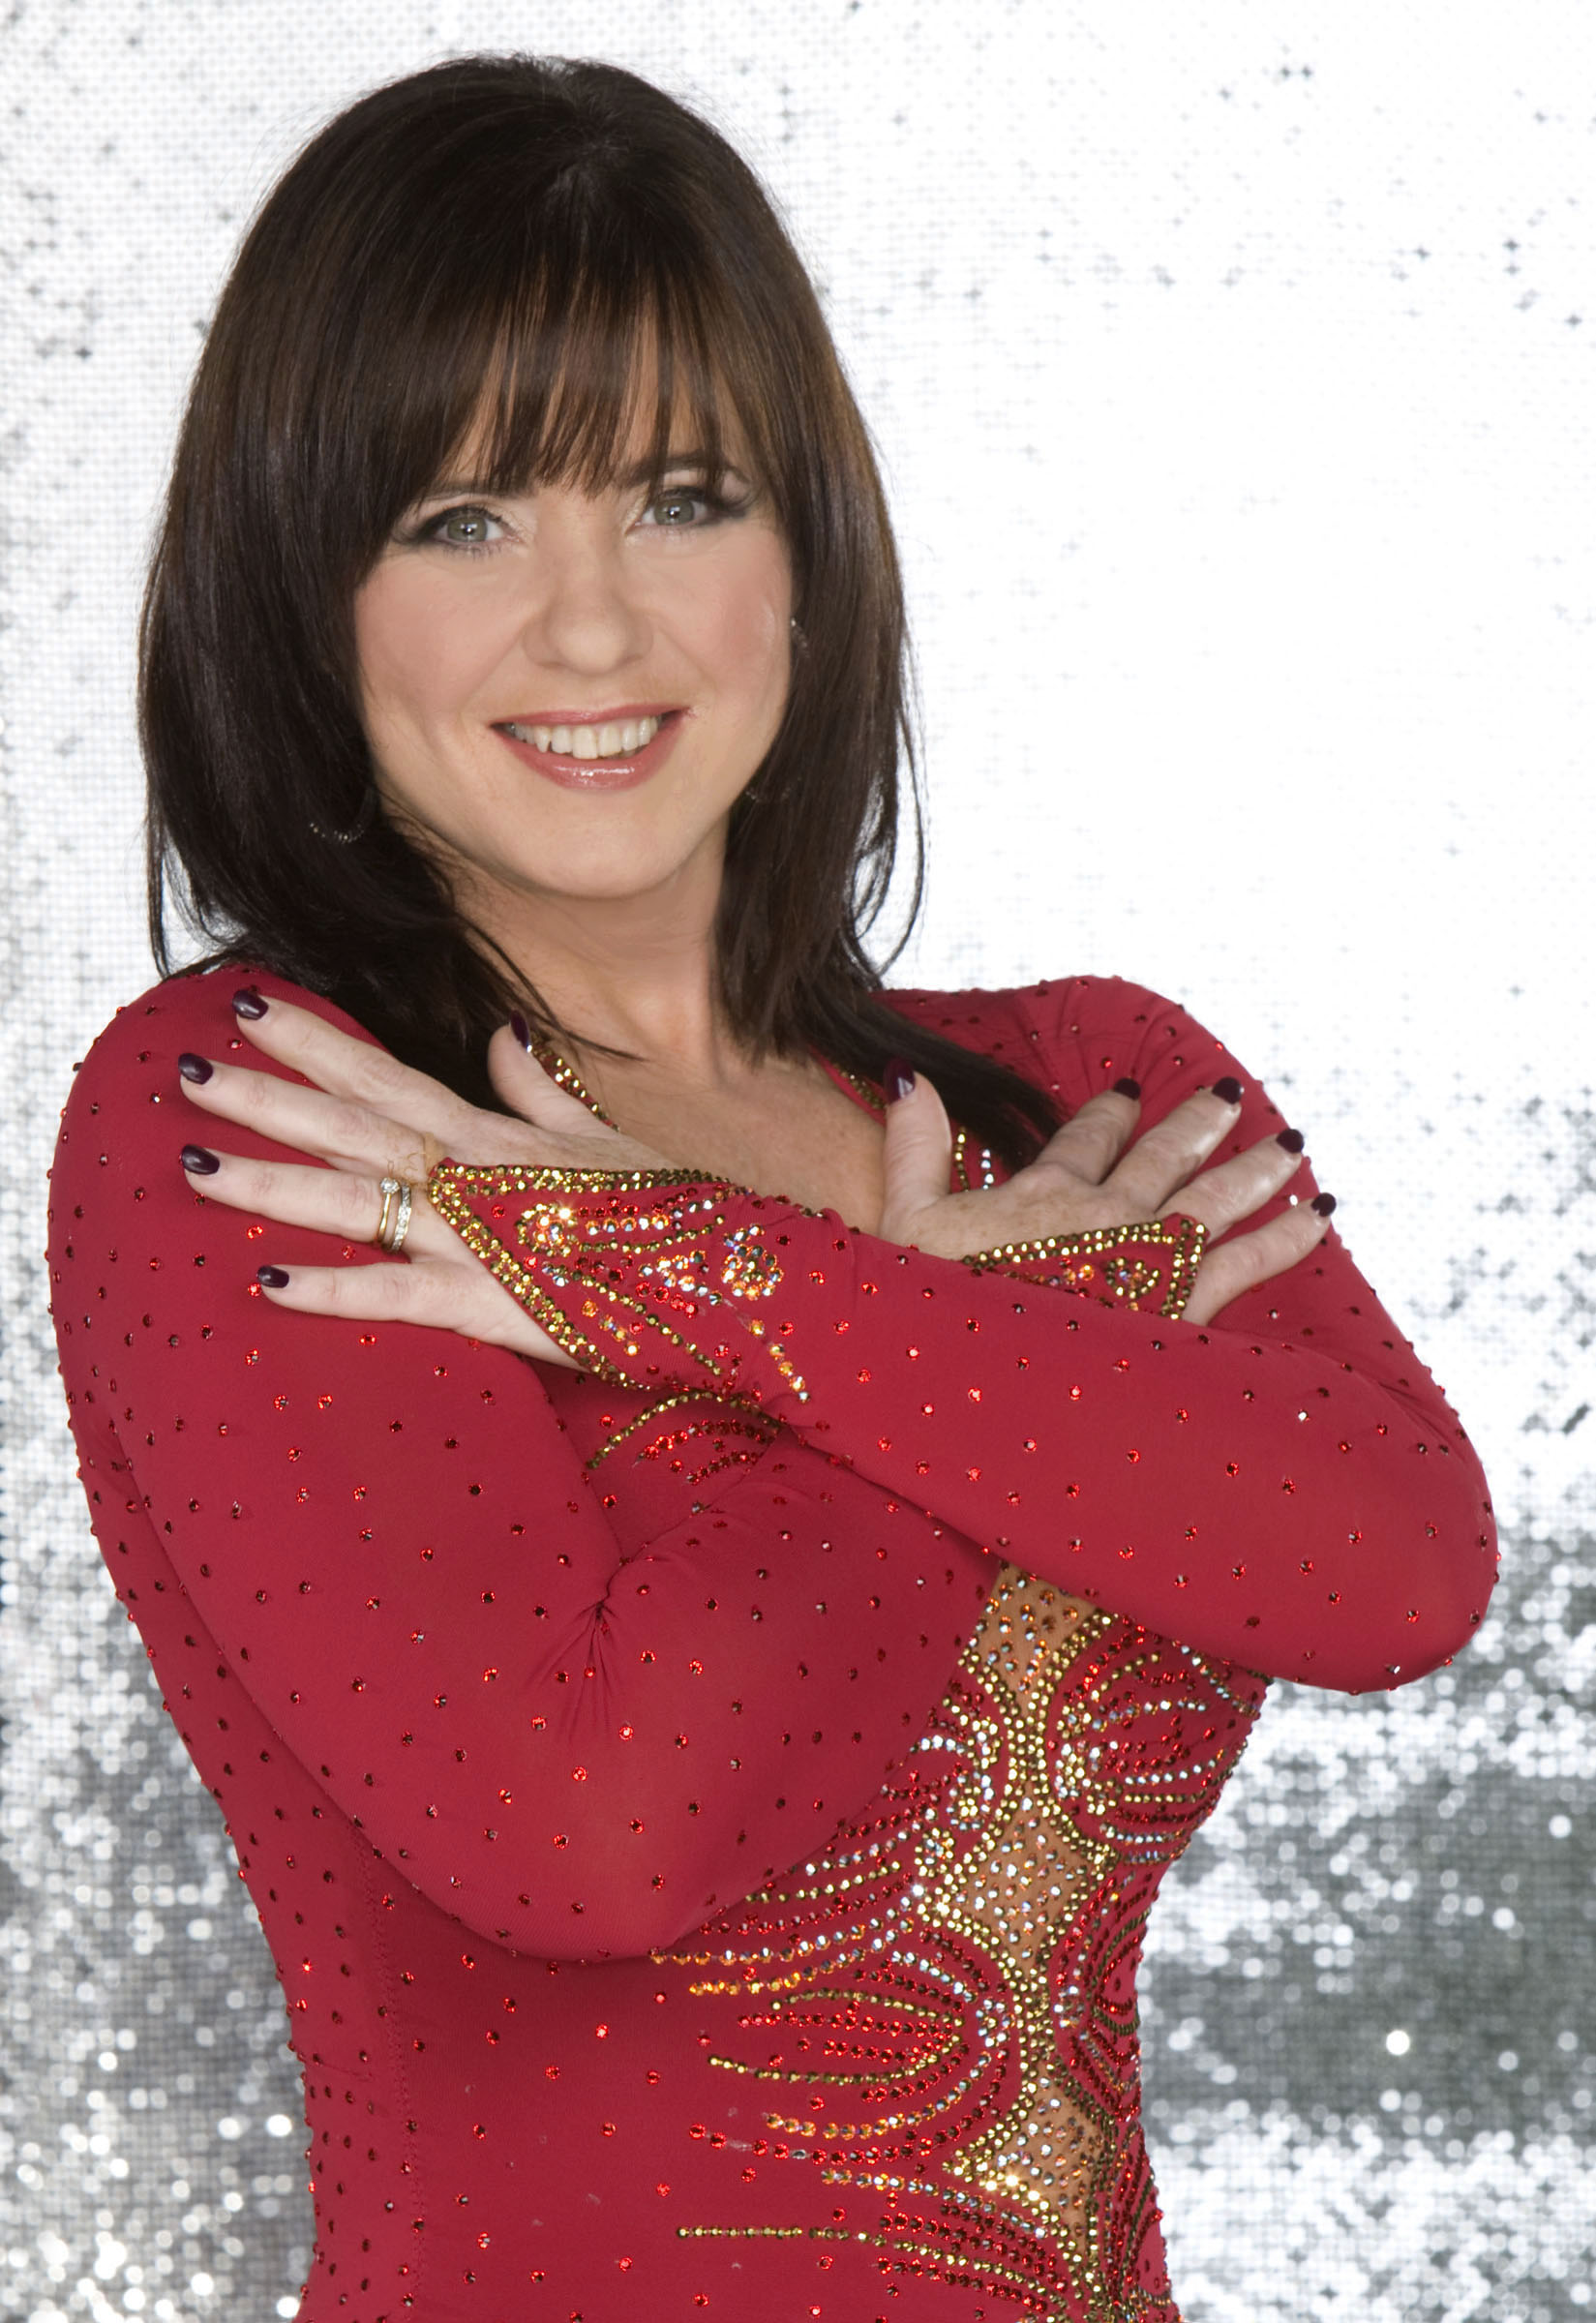 Dancing On Ice: Coleen is injured!